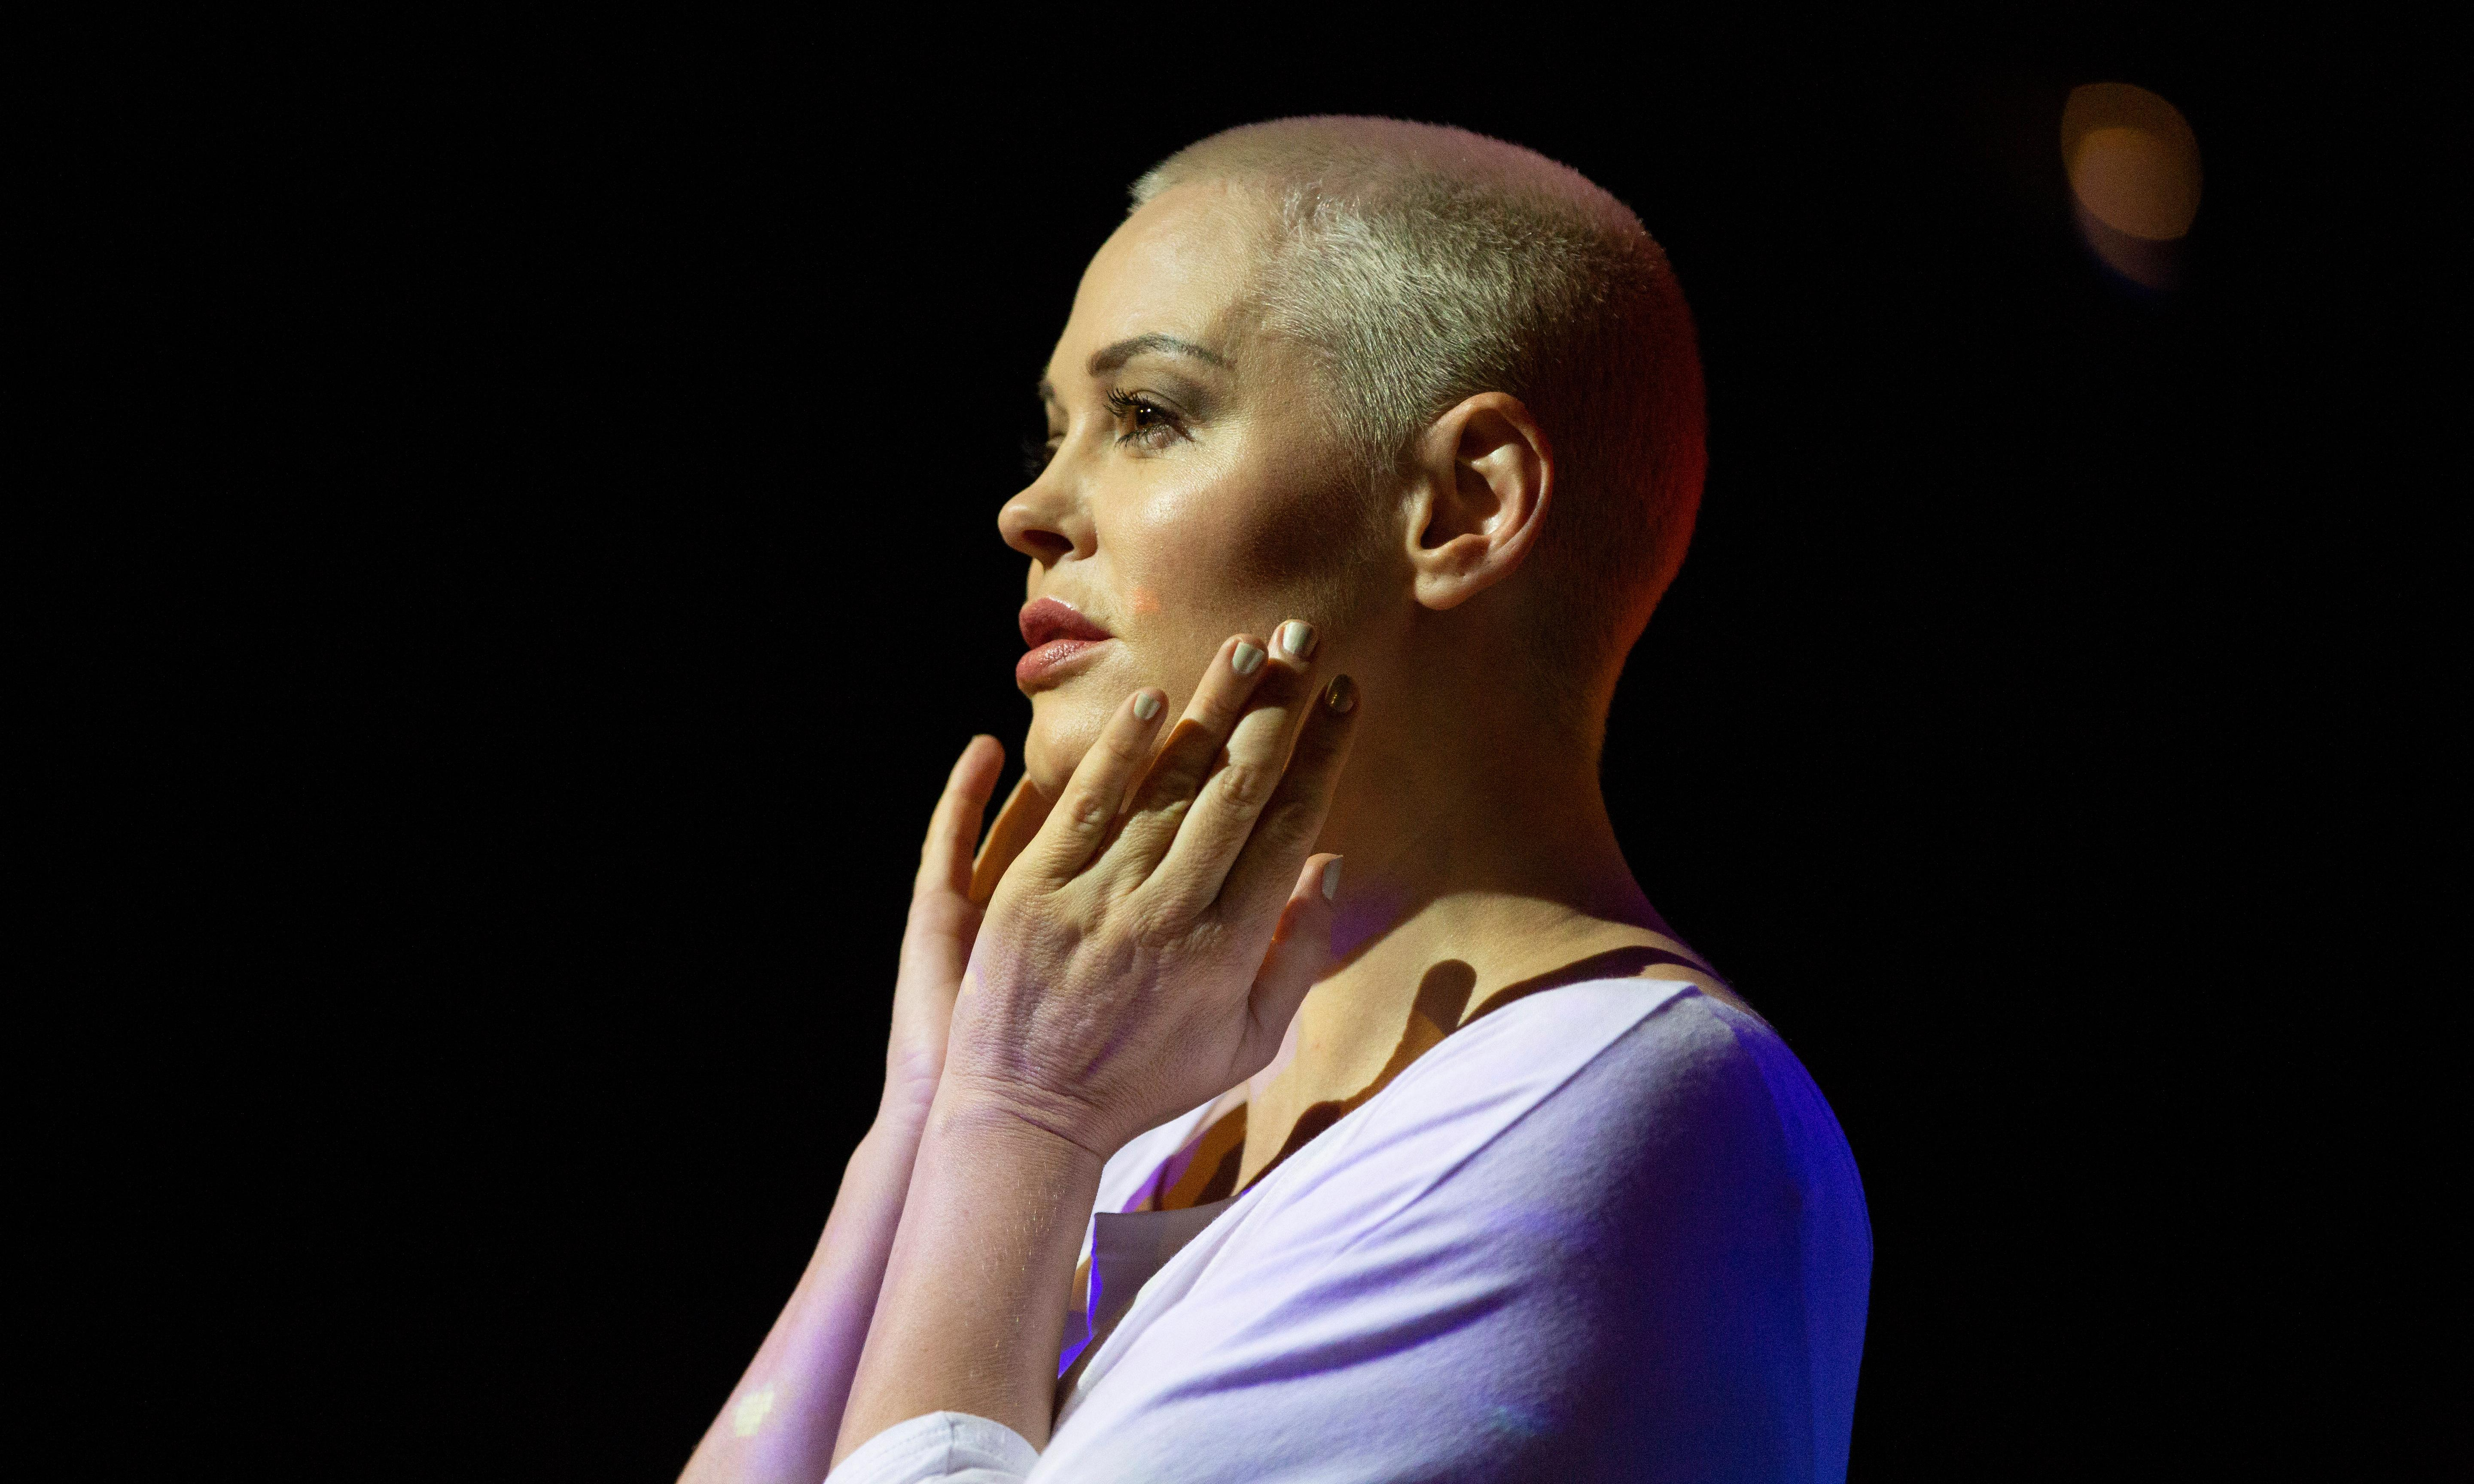 Rose McGowan says Weinstein launched 'diabolical' effort to silence her